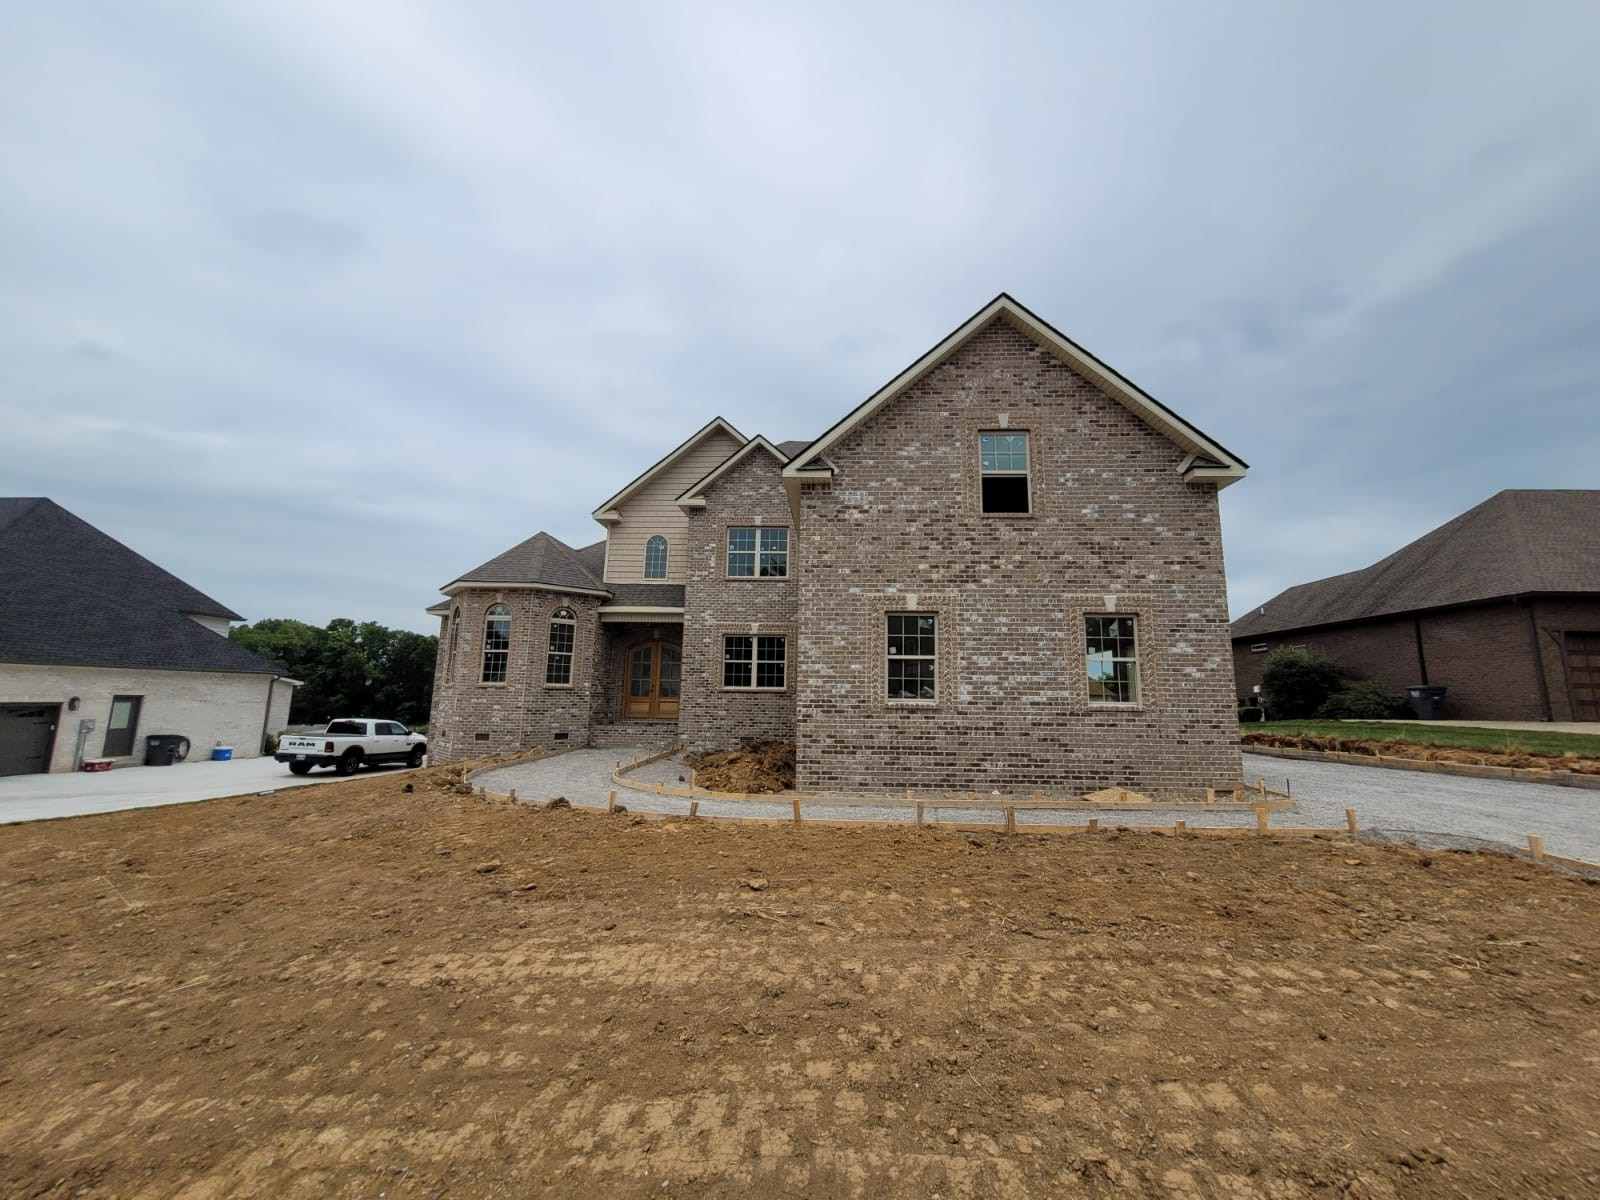 73 Copperstone Property Photo 1